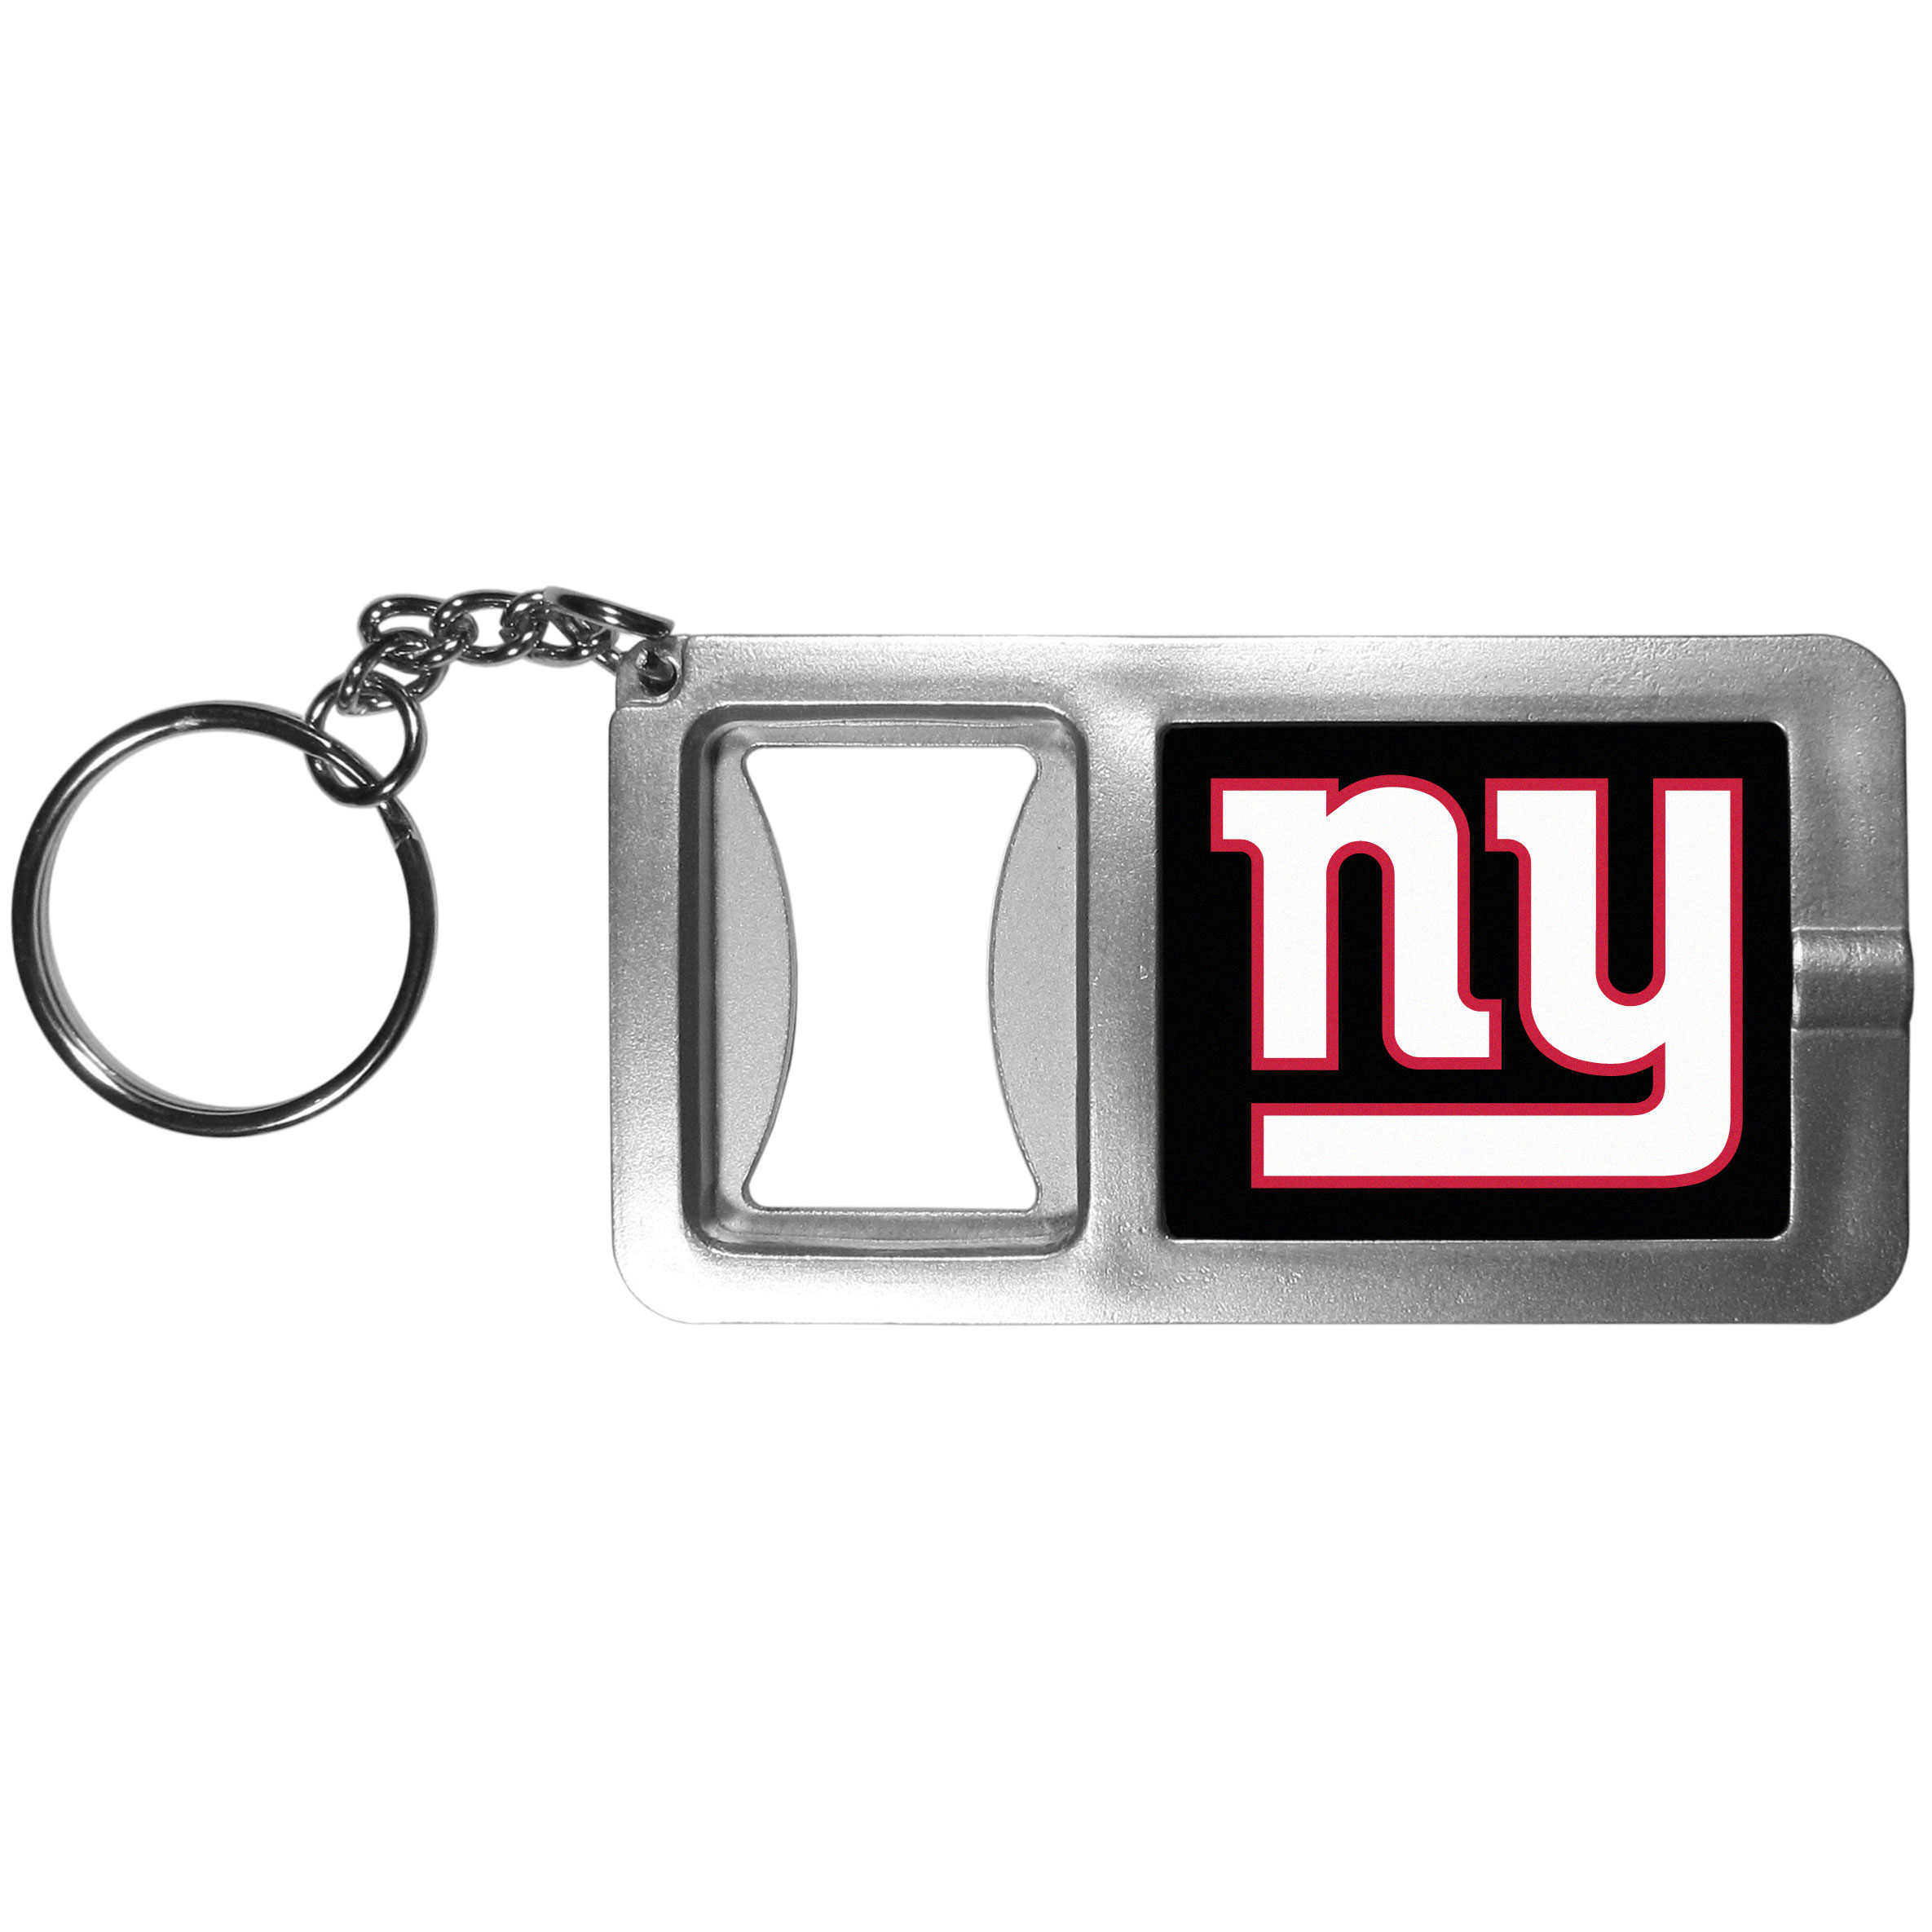 New York Giants Flashlight Key Chain with Bottle Opener - Never be without light with our New York Giants flashlight keychain that features a handy bottle opener feature. This versatile key chain is perfect for camping and travel and is a great way to show off your team pride!